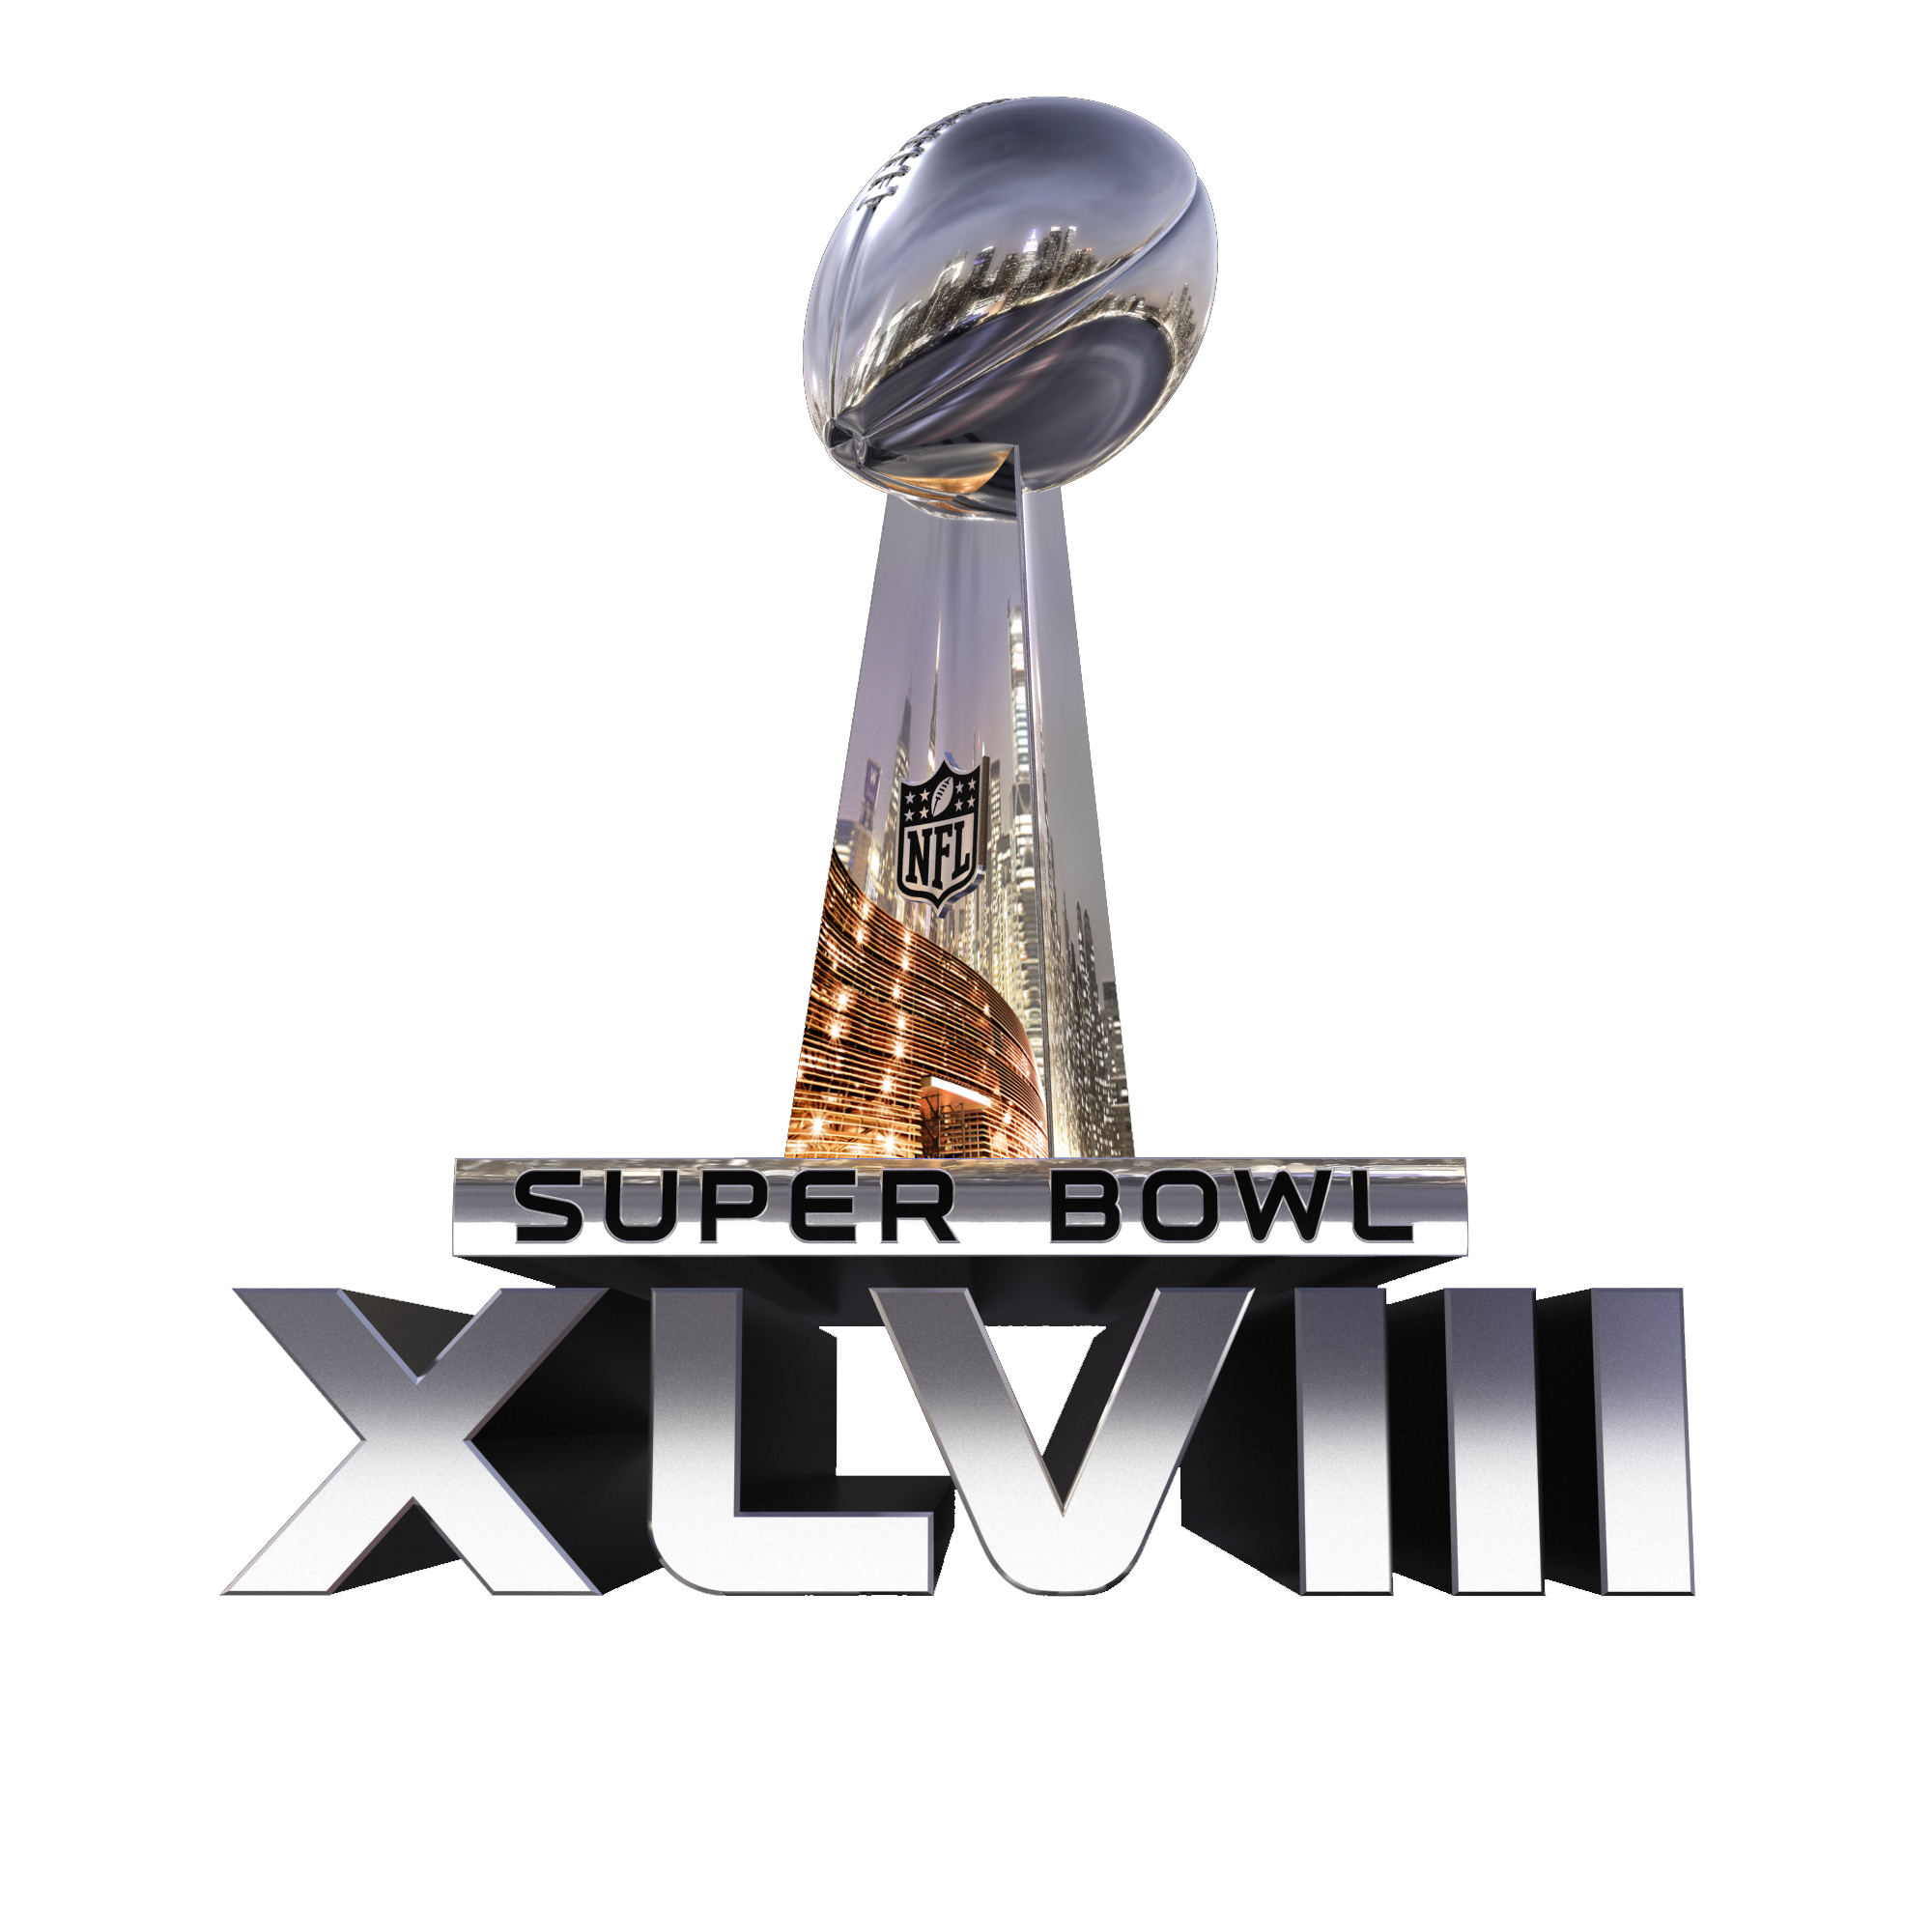 superbowl xlvııı party png logo #6054